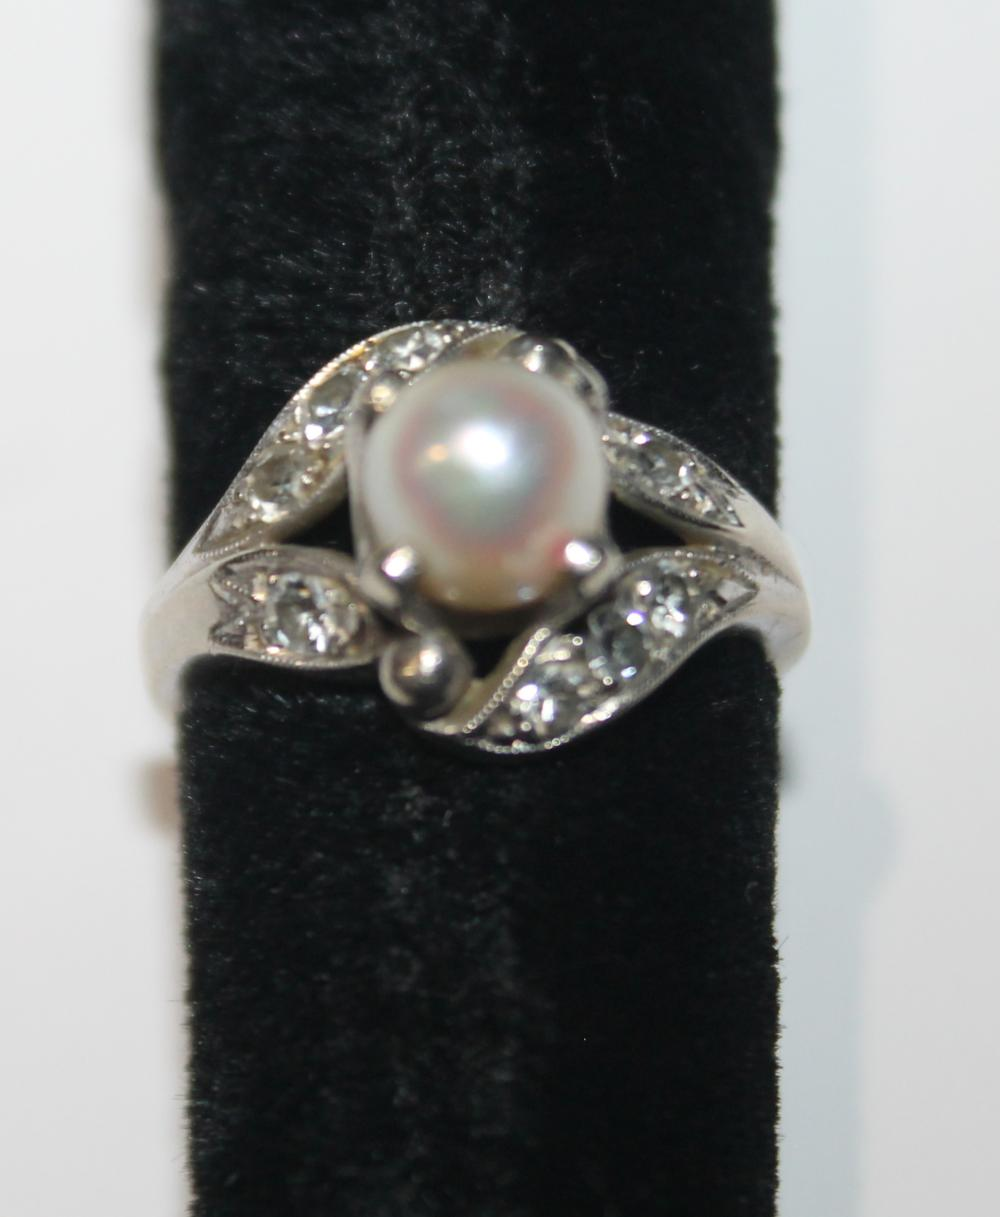 JEWELRY -  WHITE GOLD WITH PEARL & DIAMOND RING MARKED 14K